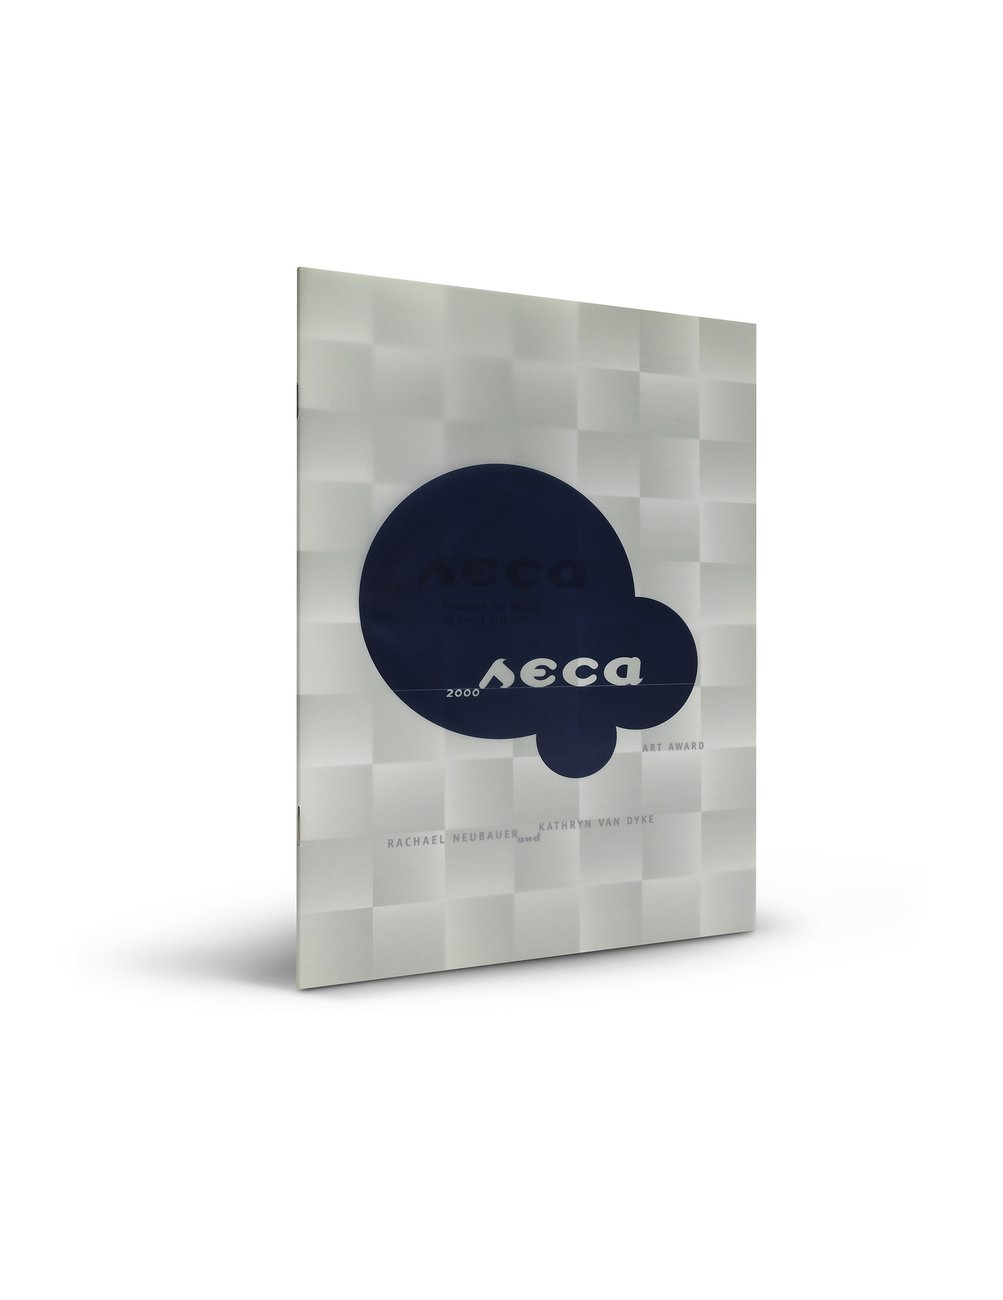 2000 SECA Art Award publication cover with outside flap closed